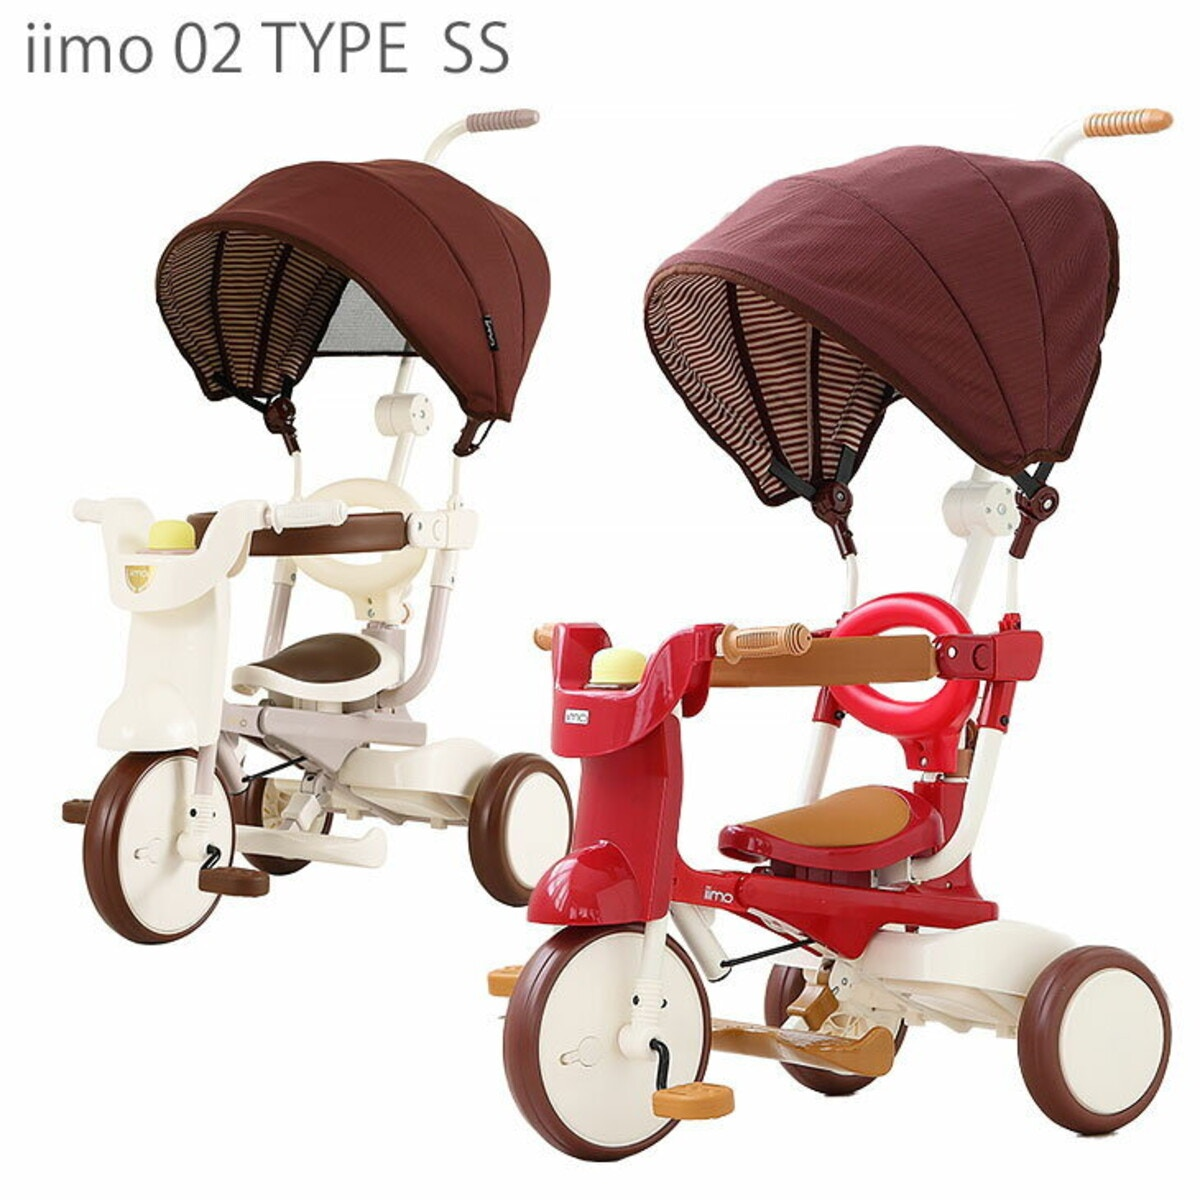 M&M iimo tricycle 02 TYPE SS